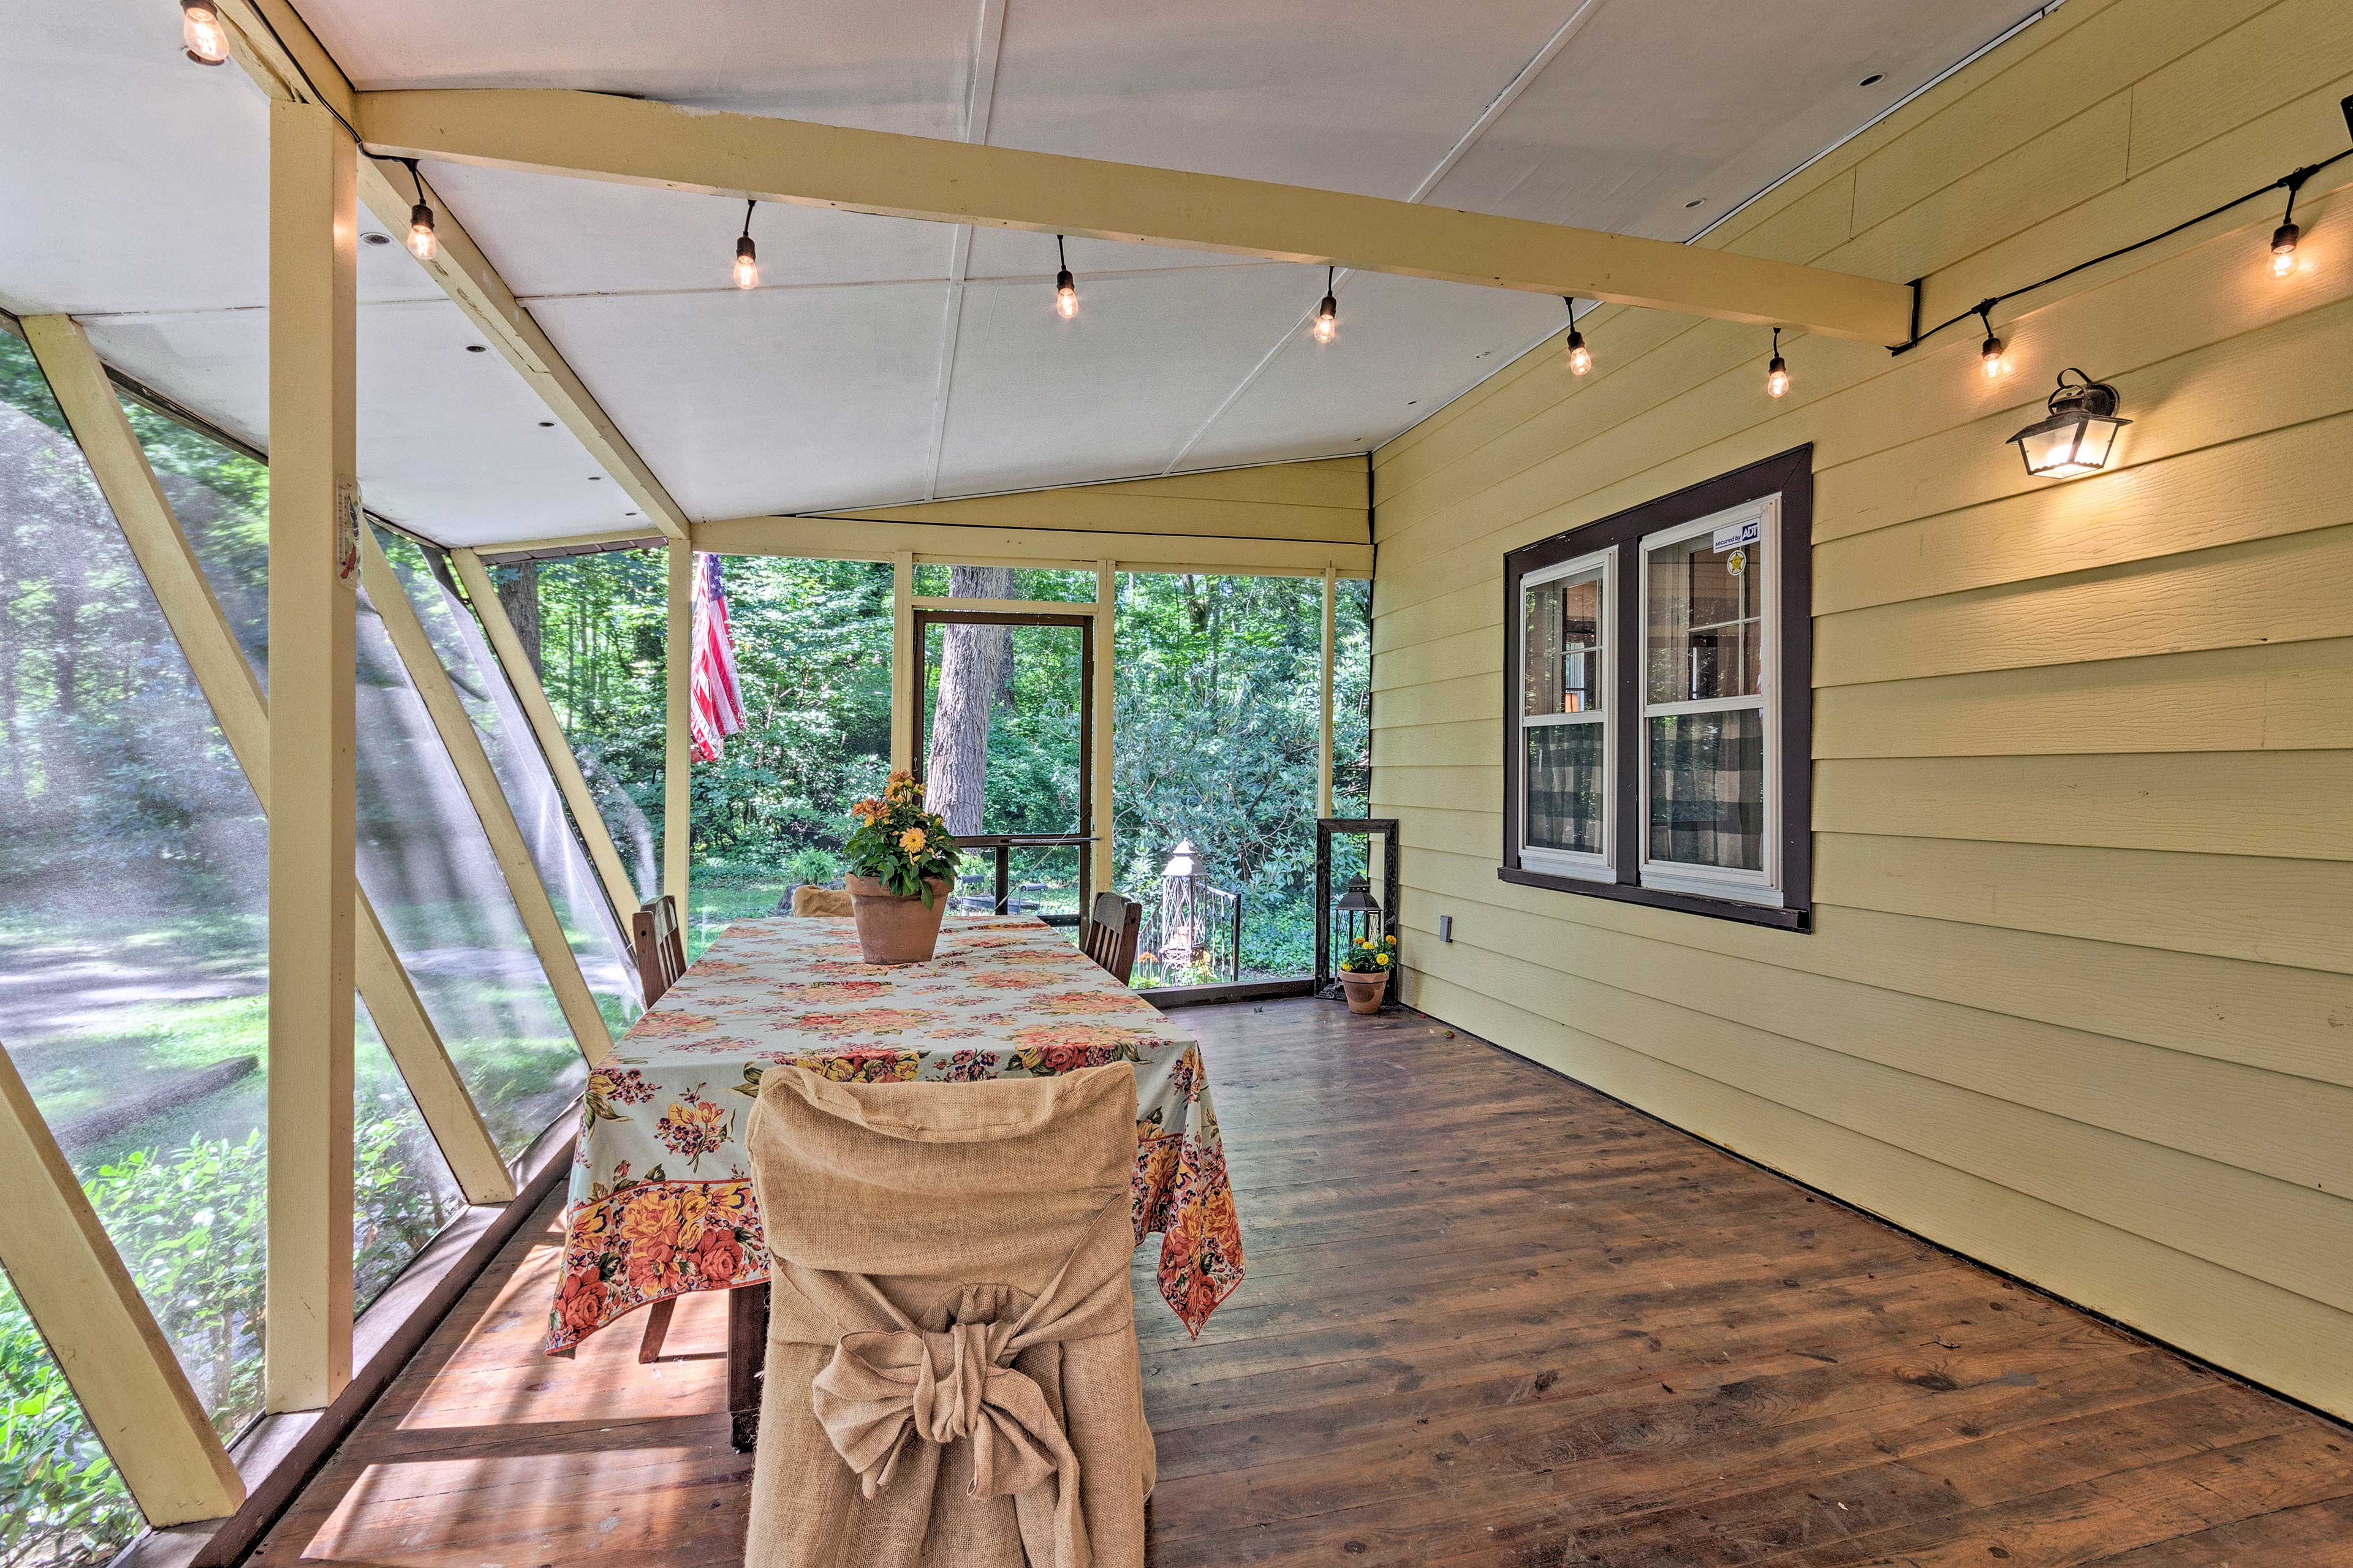 Bring your favorite book to read out in the sunroom.